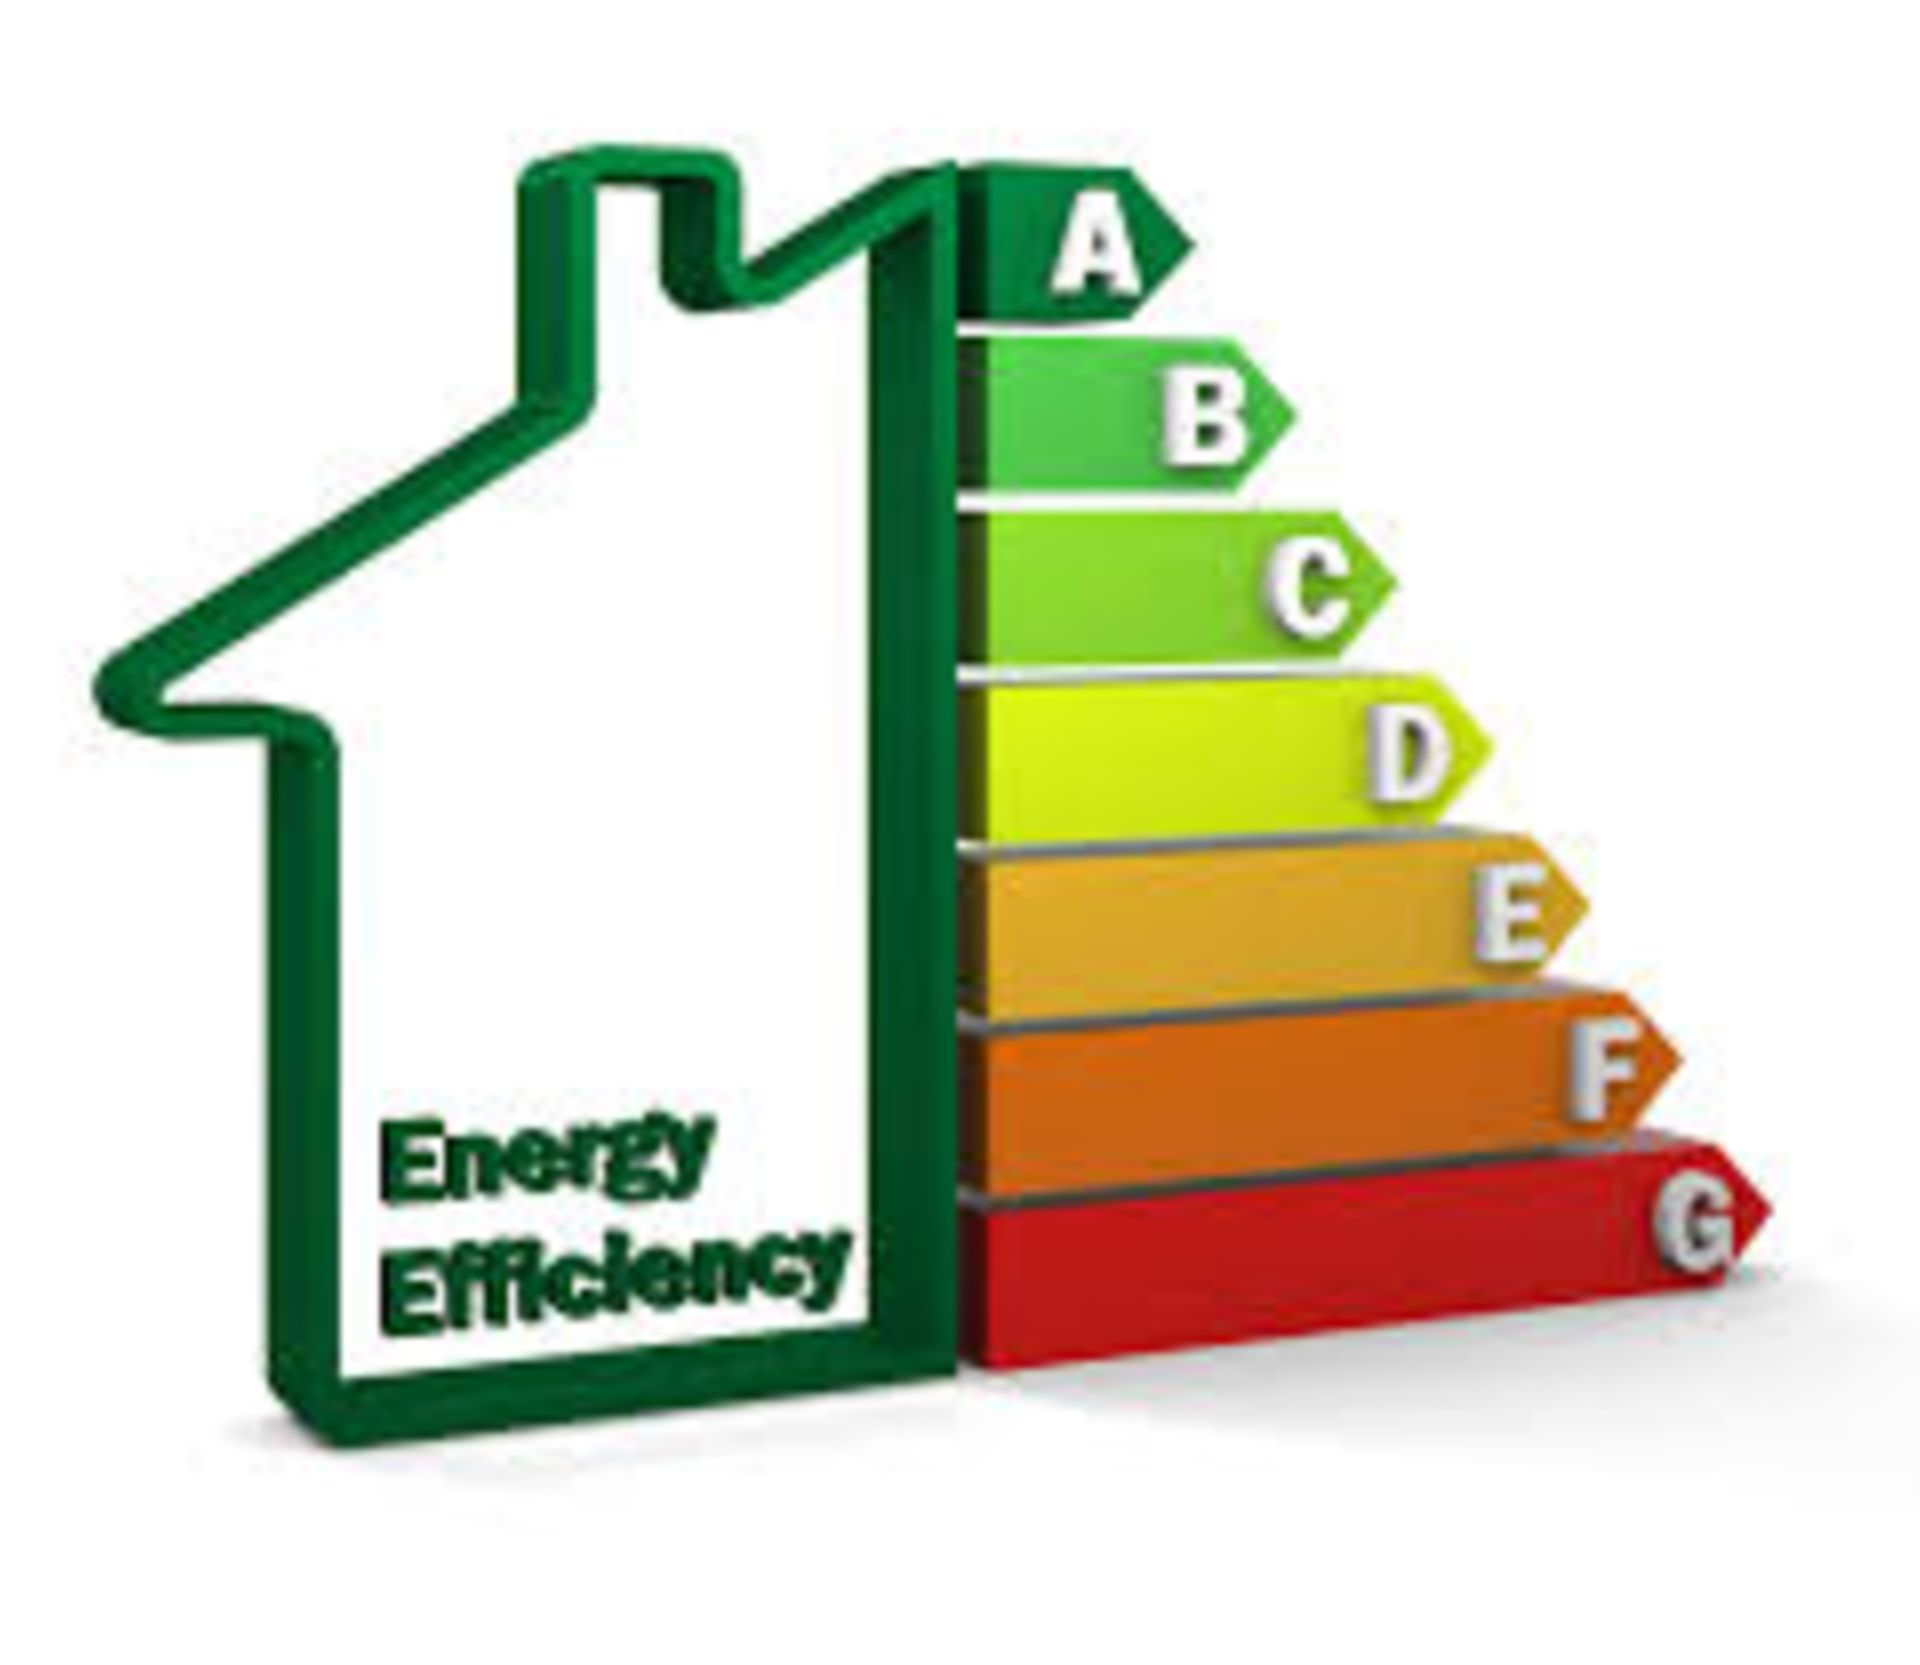 4 Ways to Be More Energy Efficient at Home